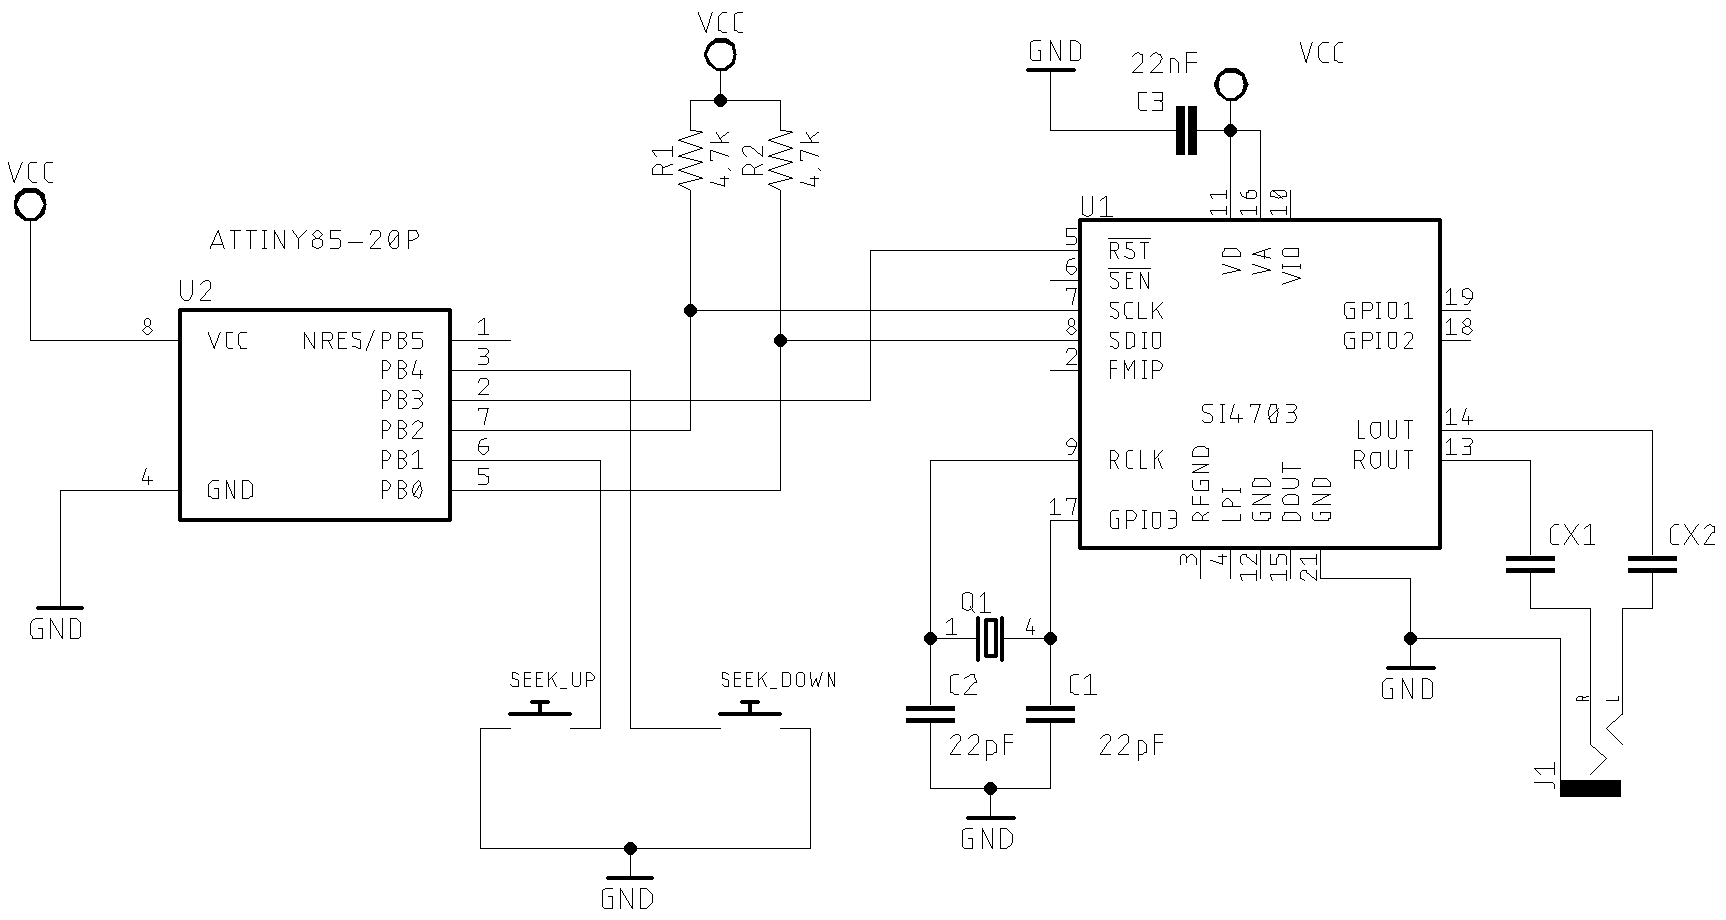 schematic Attiny85 and buttons